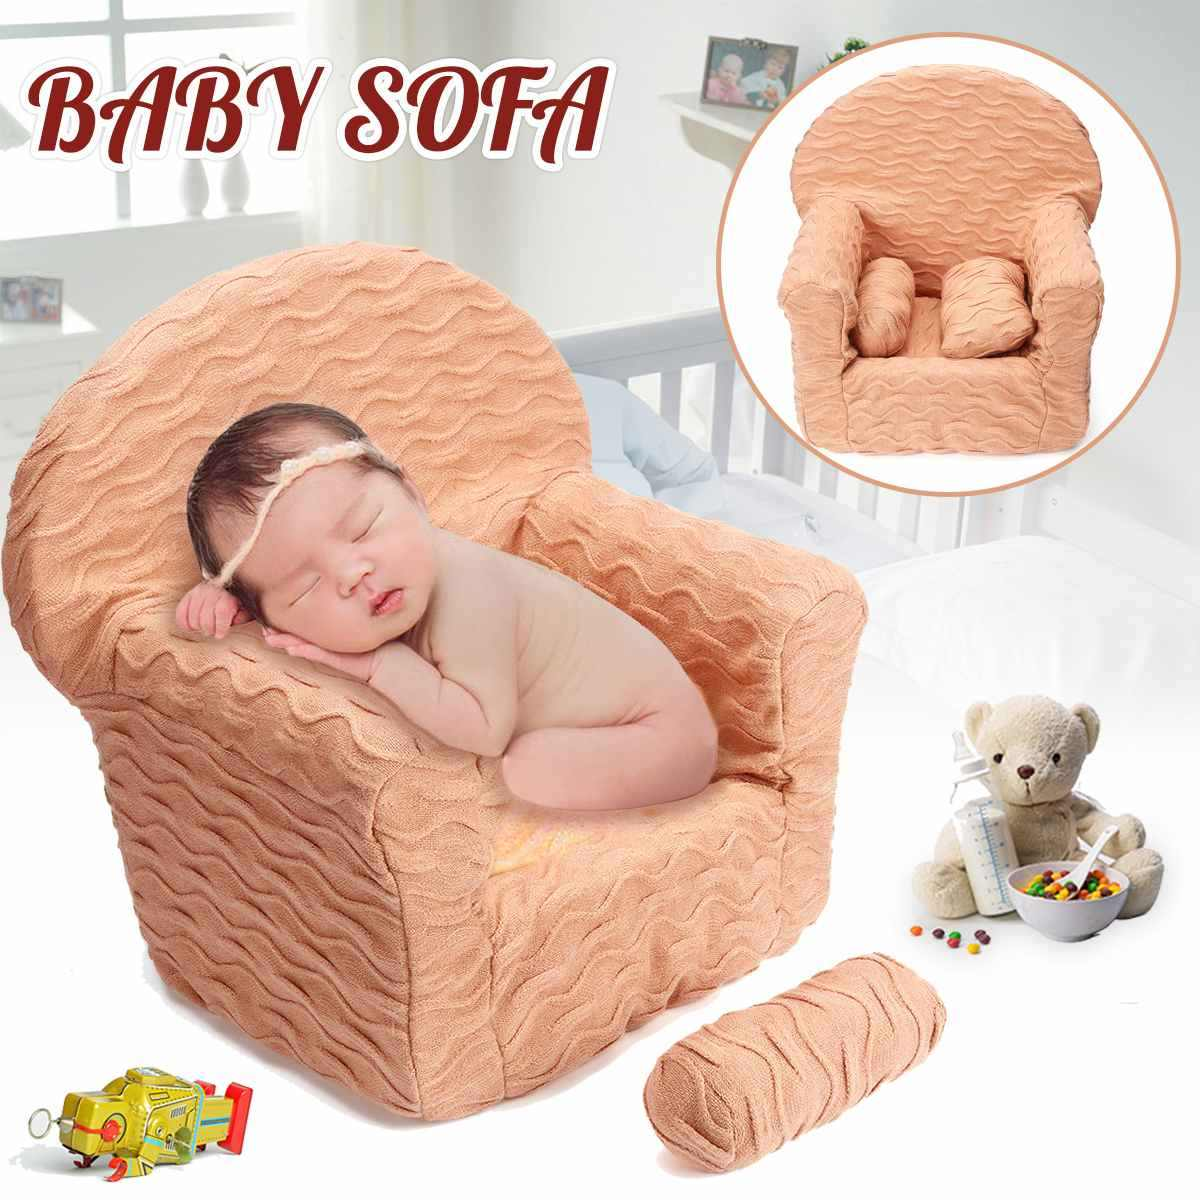 0aacdf645e494 Newborn Baby Sofa Baby Modeling Photography Props Small Sofa Chair Photo  Decor Studio Photoshoot Accessories Tool